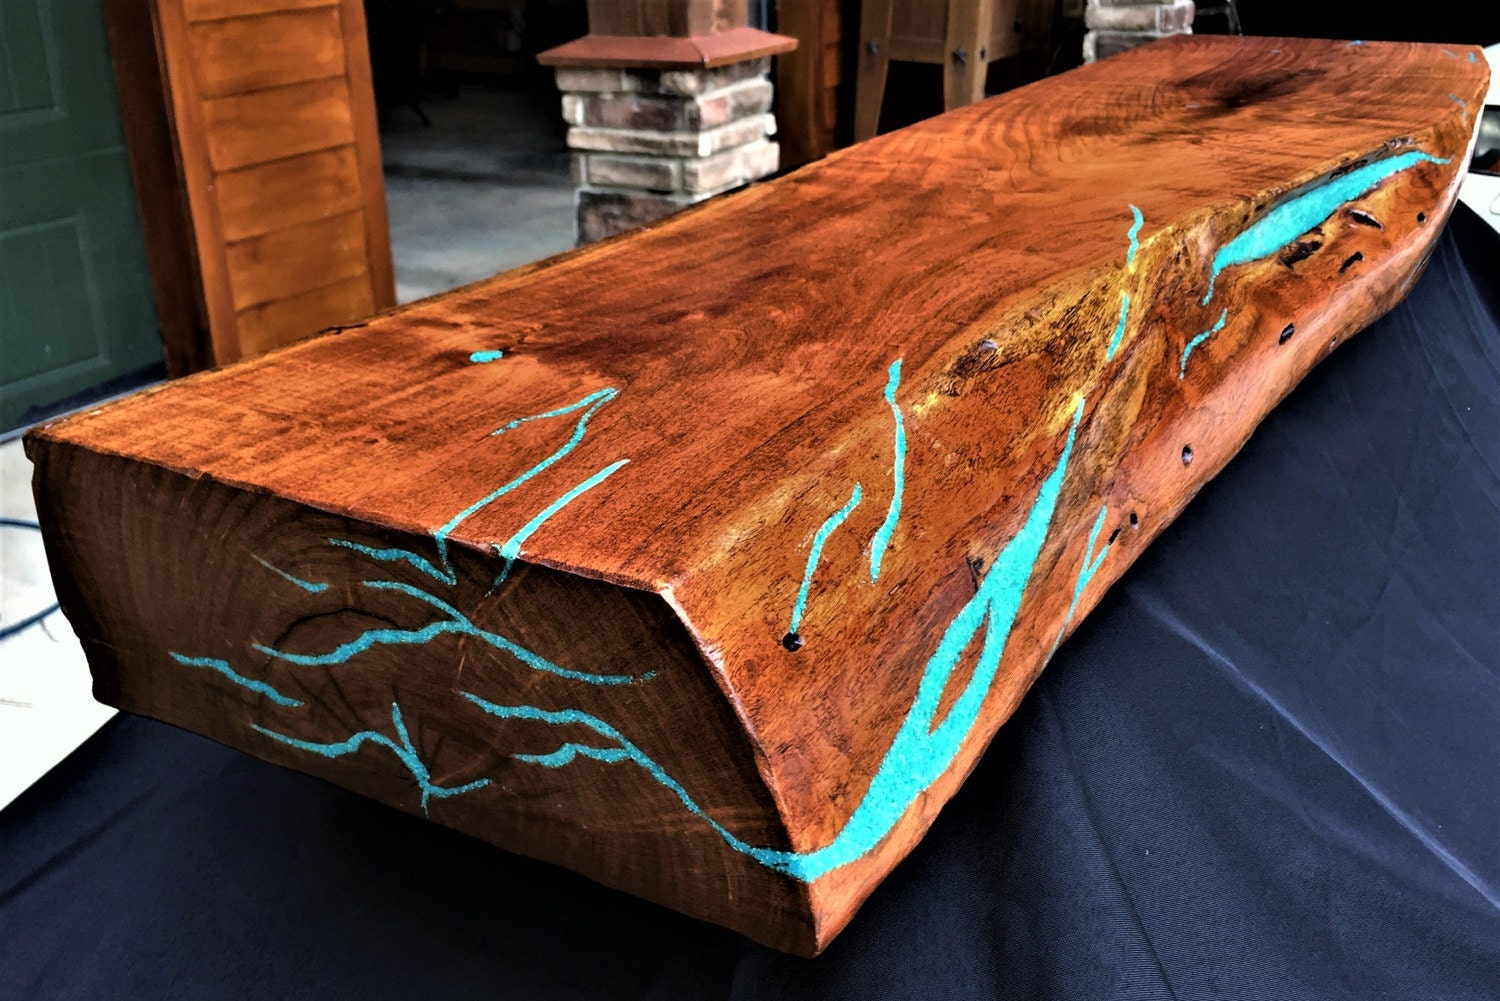 Mesquite Live Edge Fireplace Mantel Turquoise Inlay